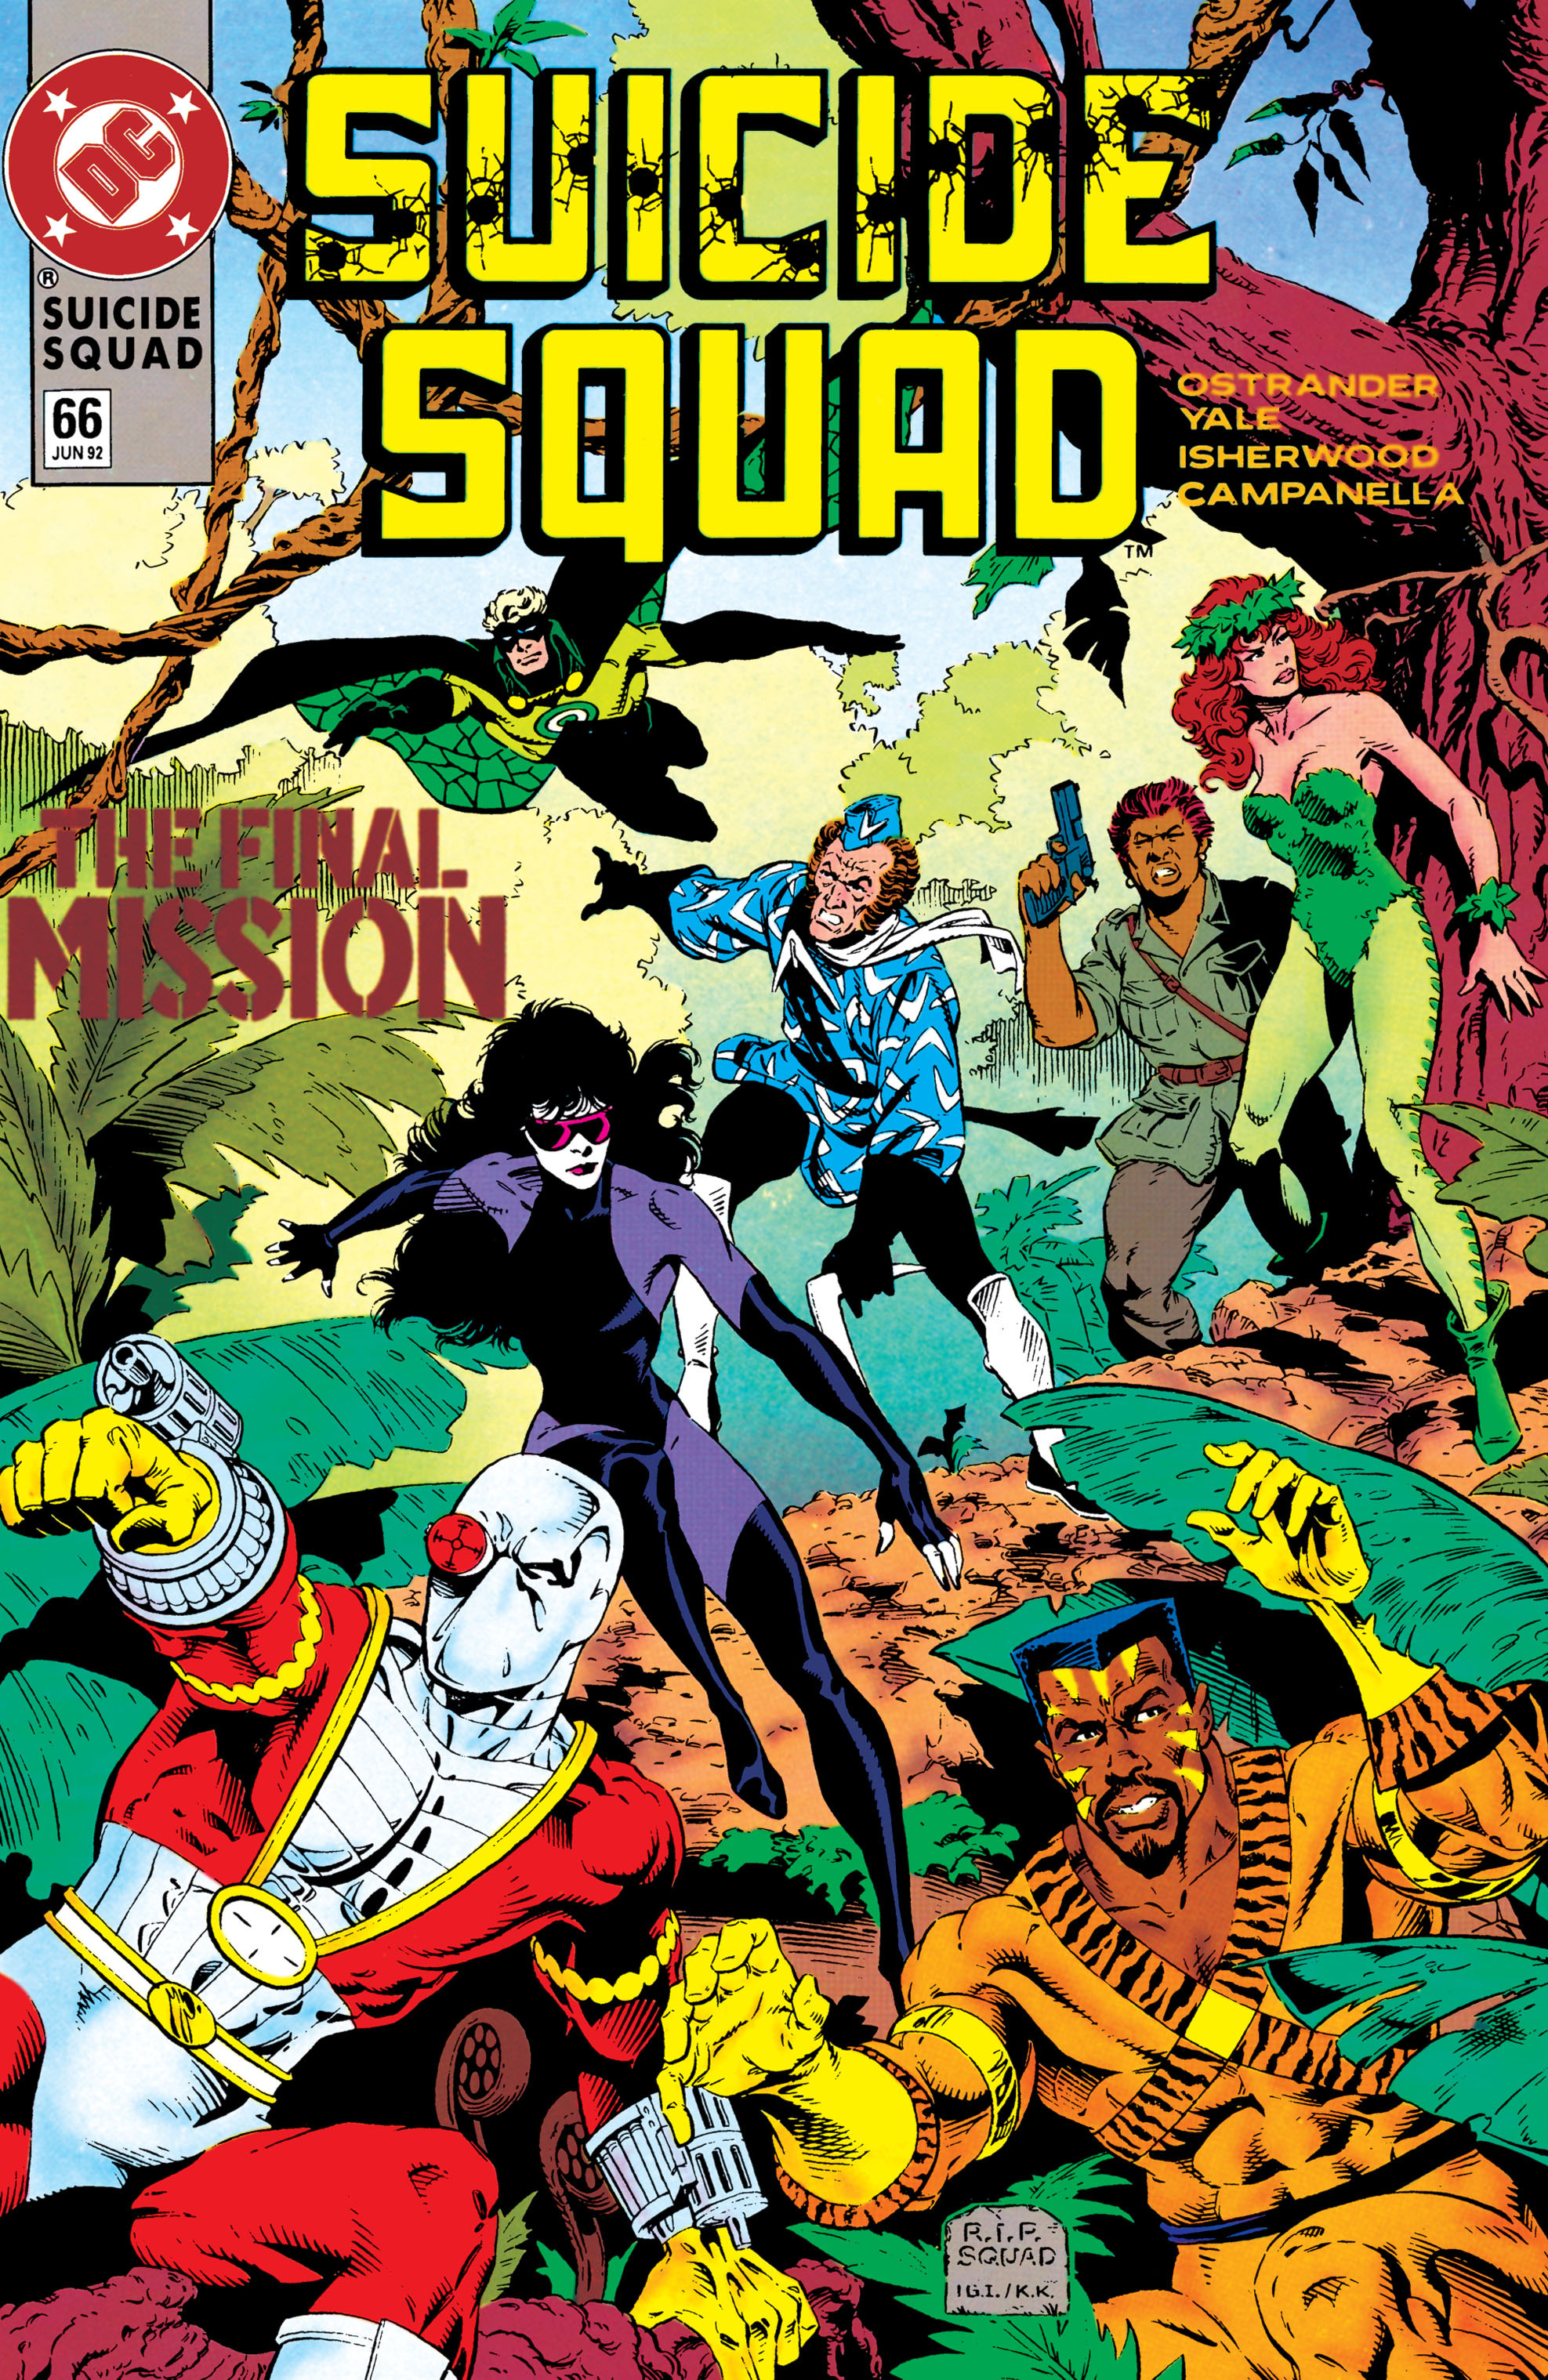 Suicide Squad (1987) issue 66 - Page 1